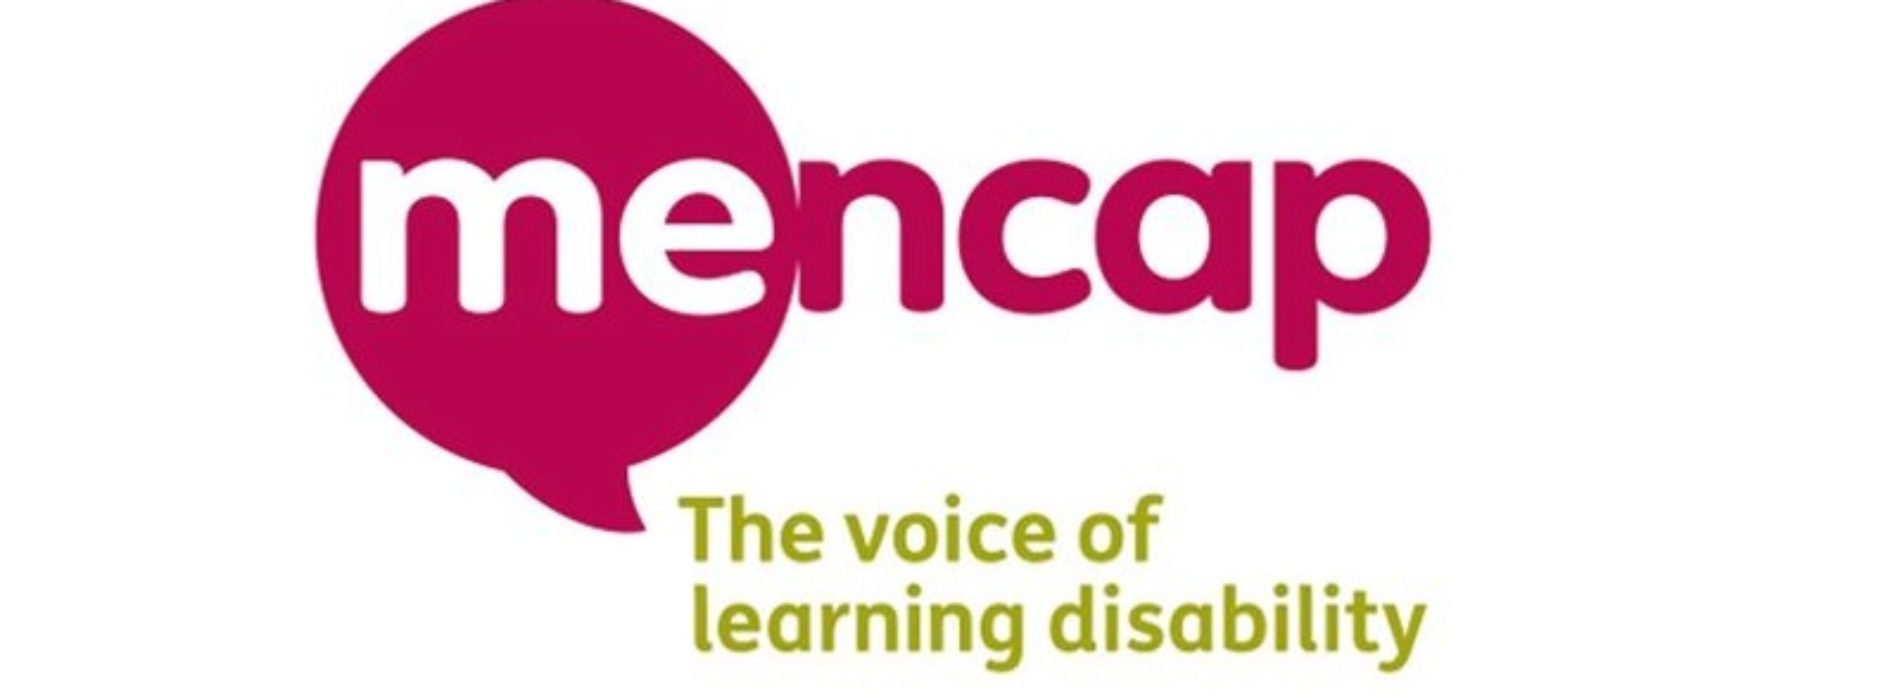 Mencap Journalism Awards 2017: changing attitudes towards learning disability in the media